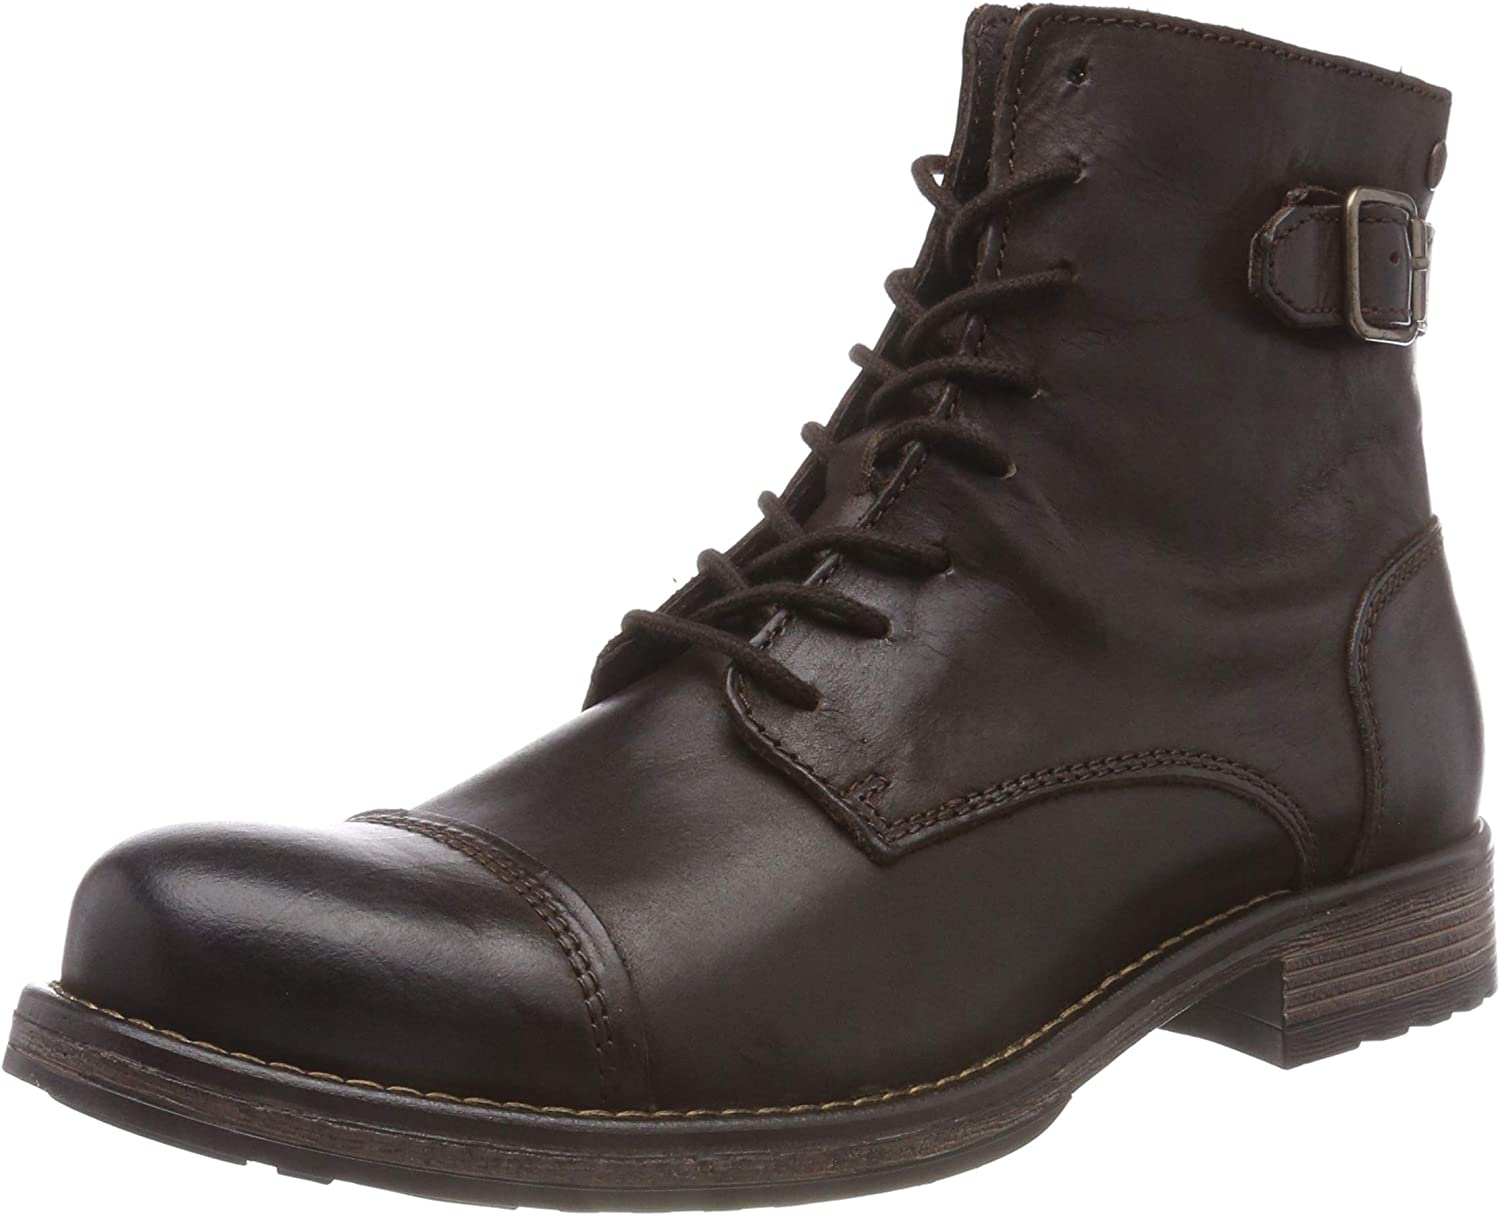 Jack & Jones Jfwsiti Leather Brown Stone, Botas Clasicas para Hombre